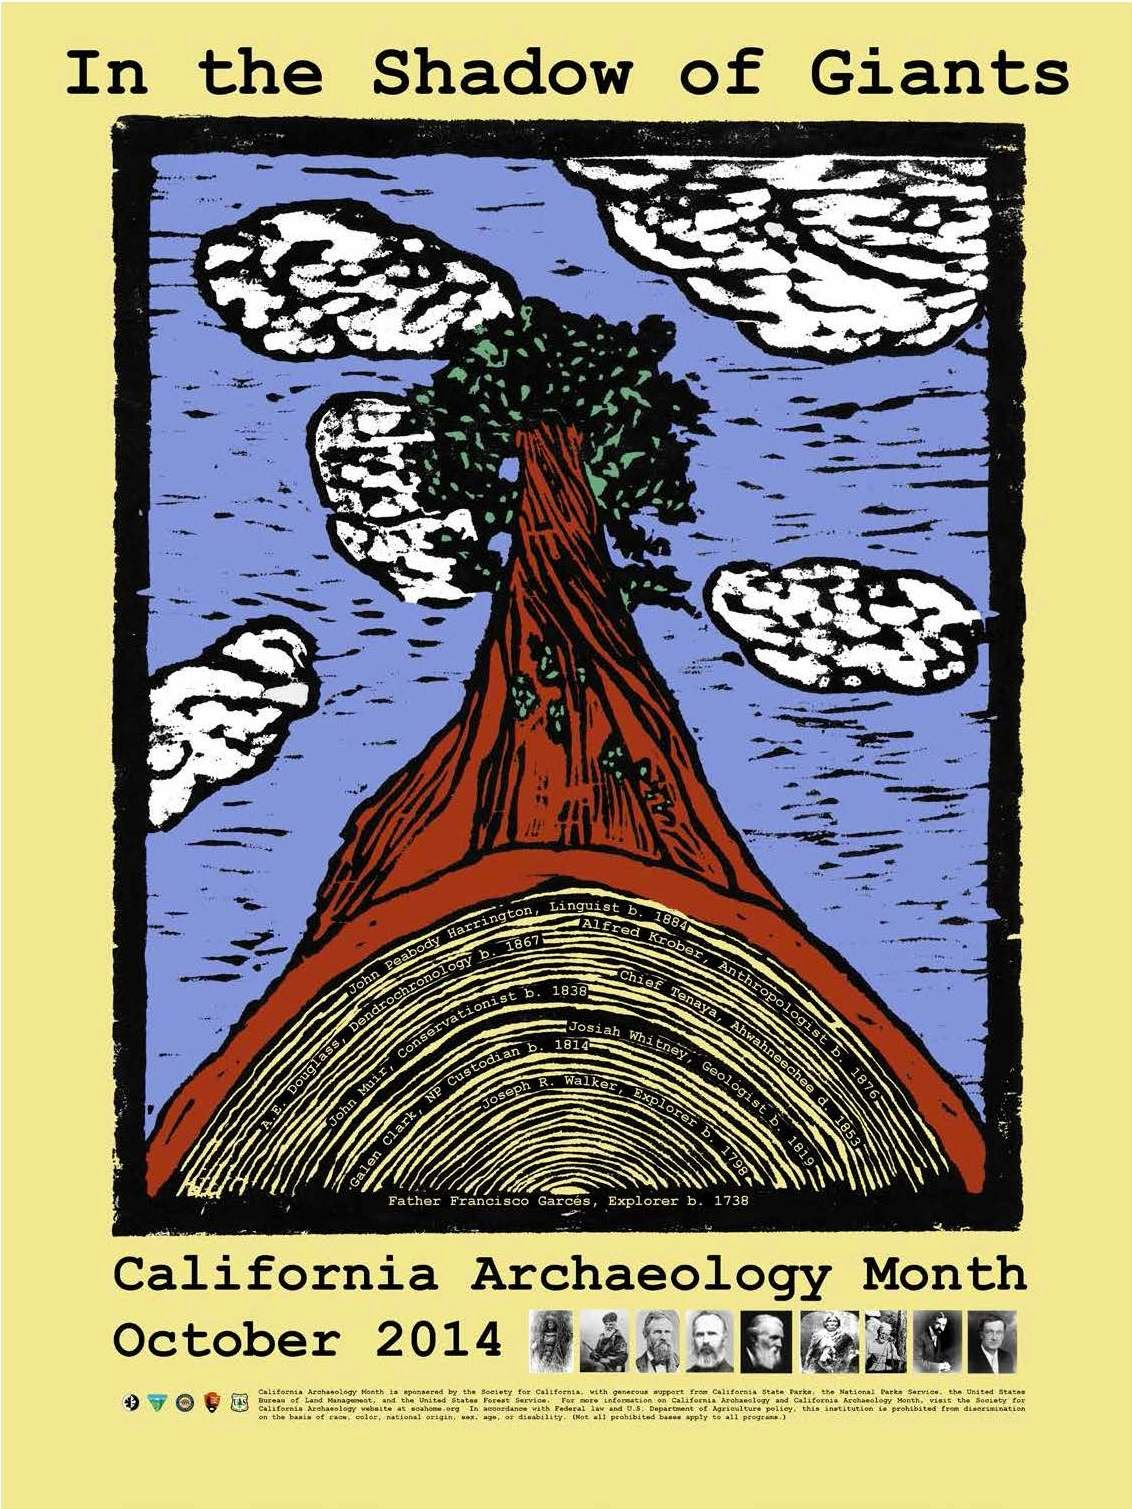 California Archaeology Month poster